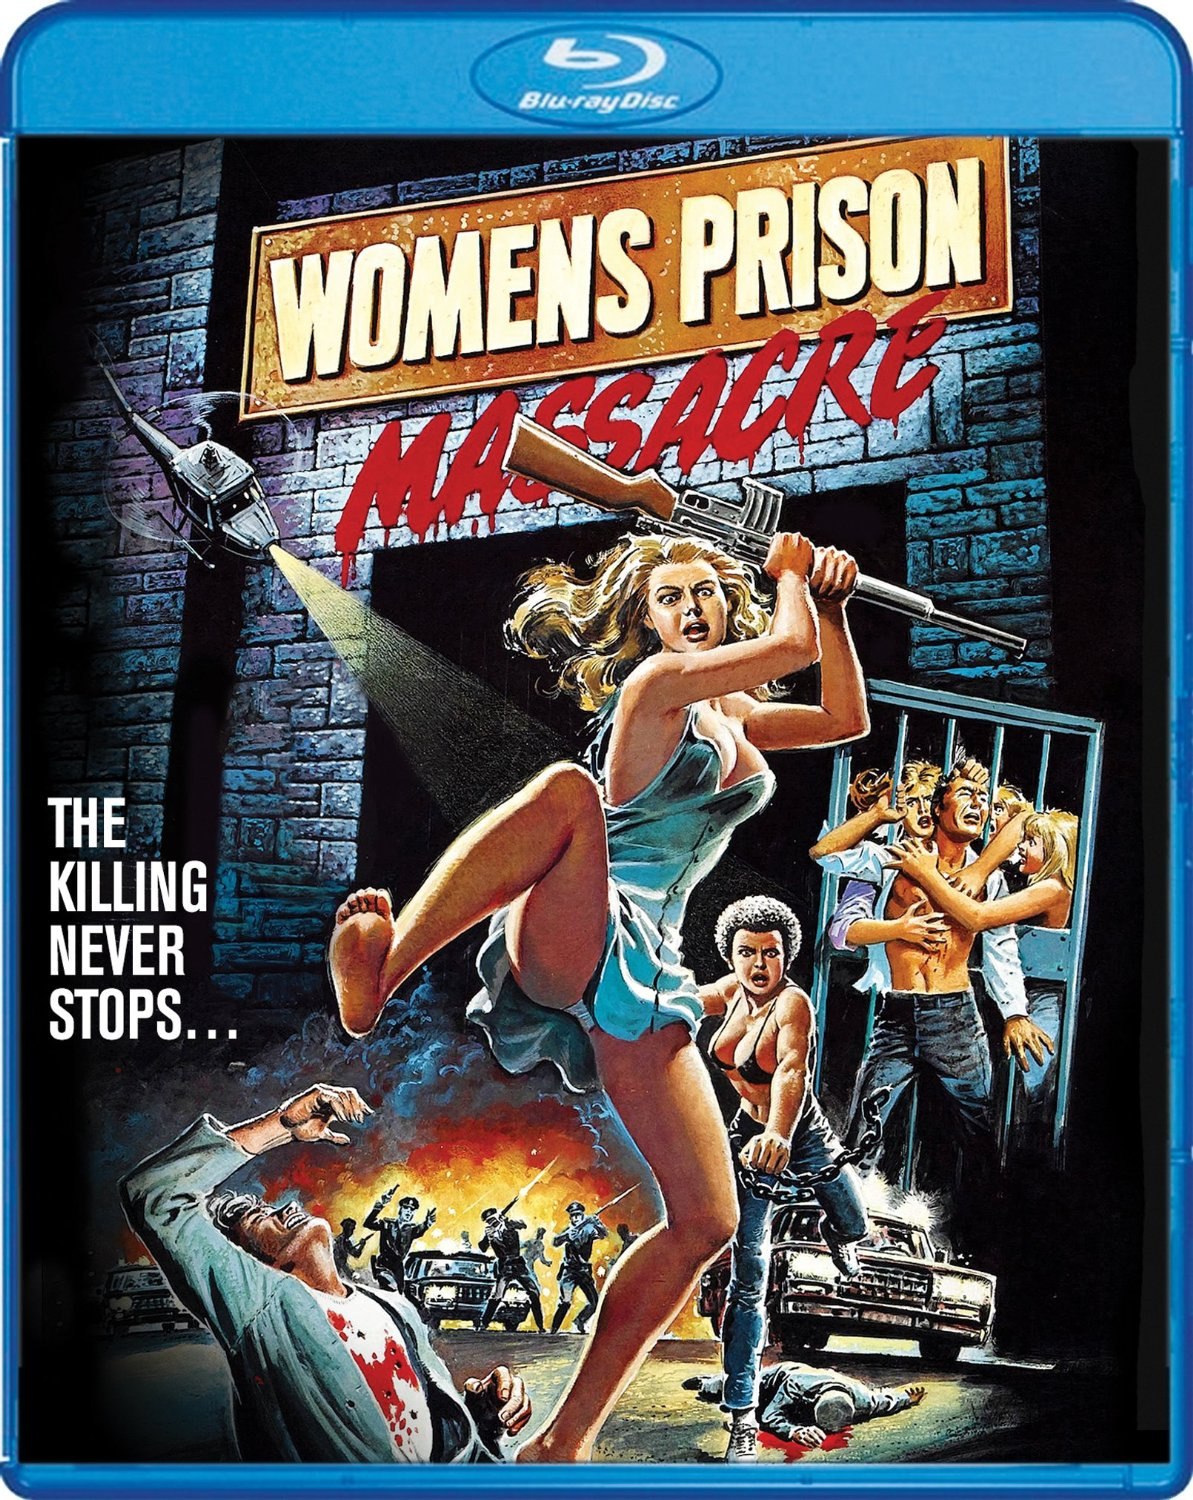 womens prison massacre - Women's Prison Massacre (Blu-ray)